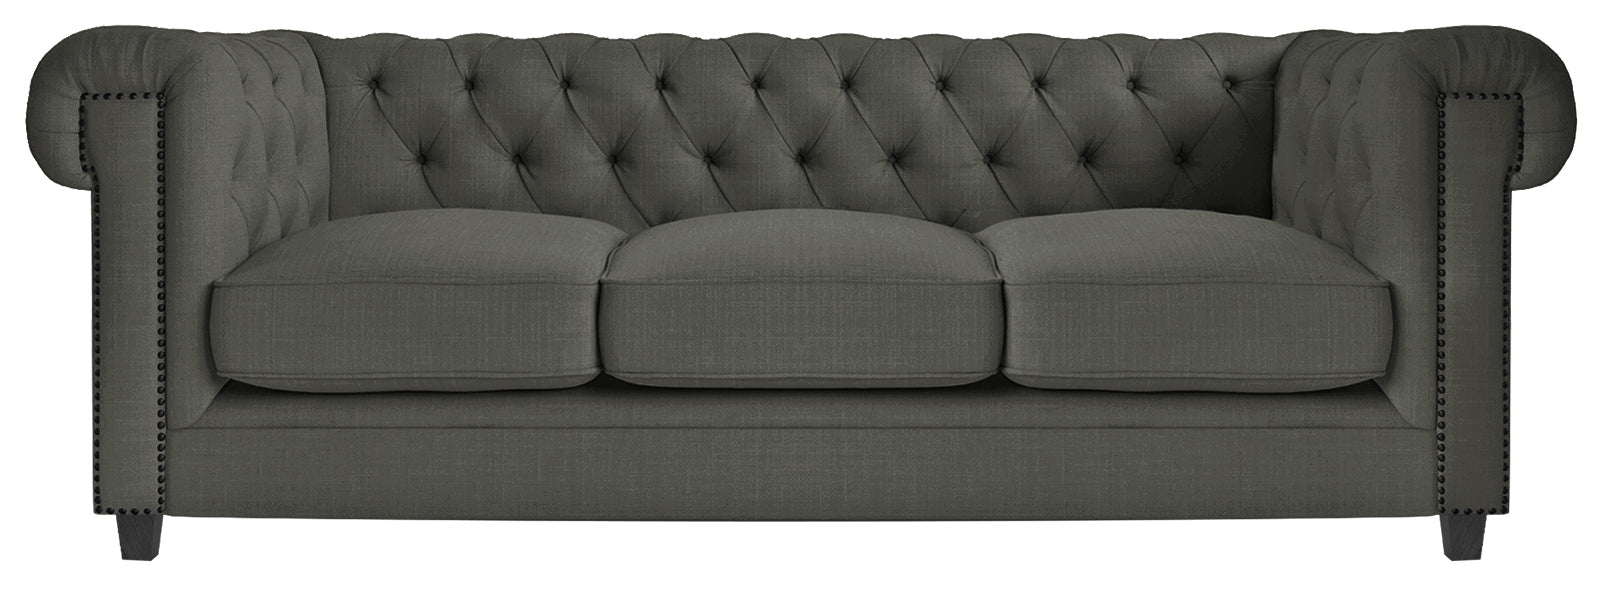 ALESSA SOFA (3 SEATER)